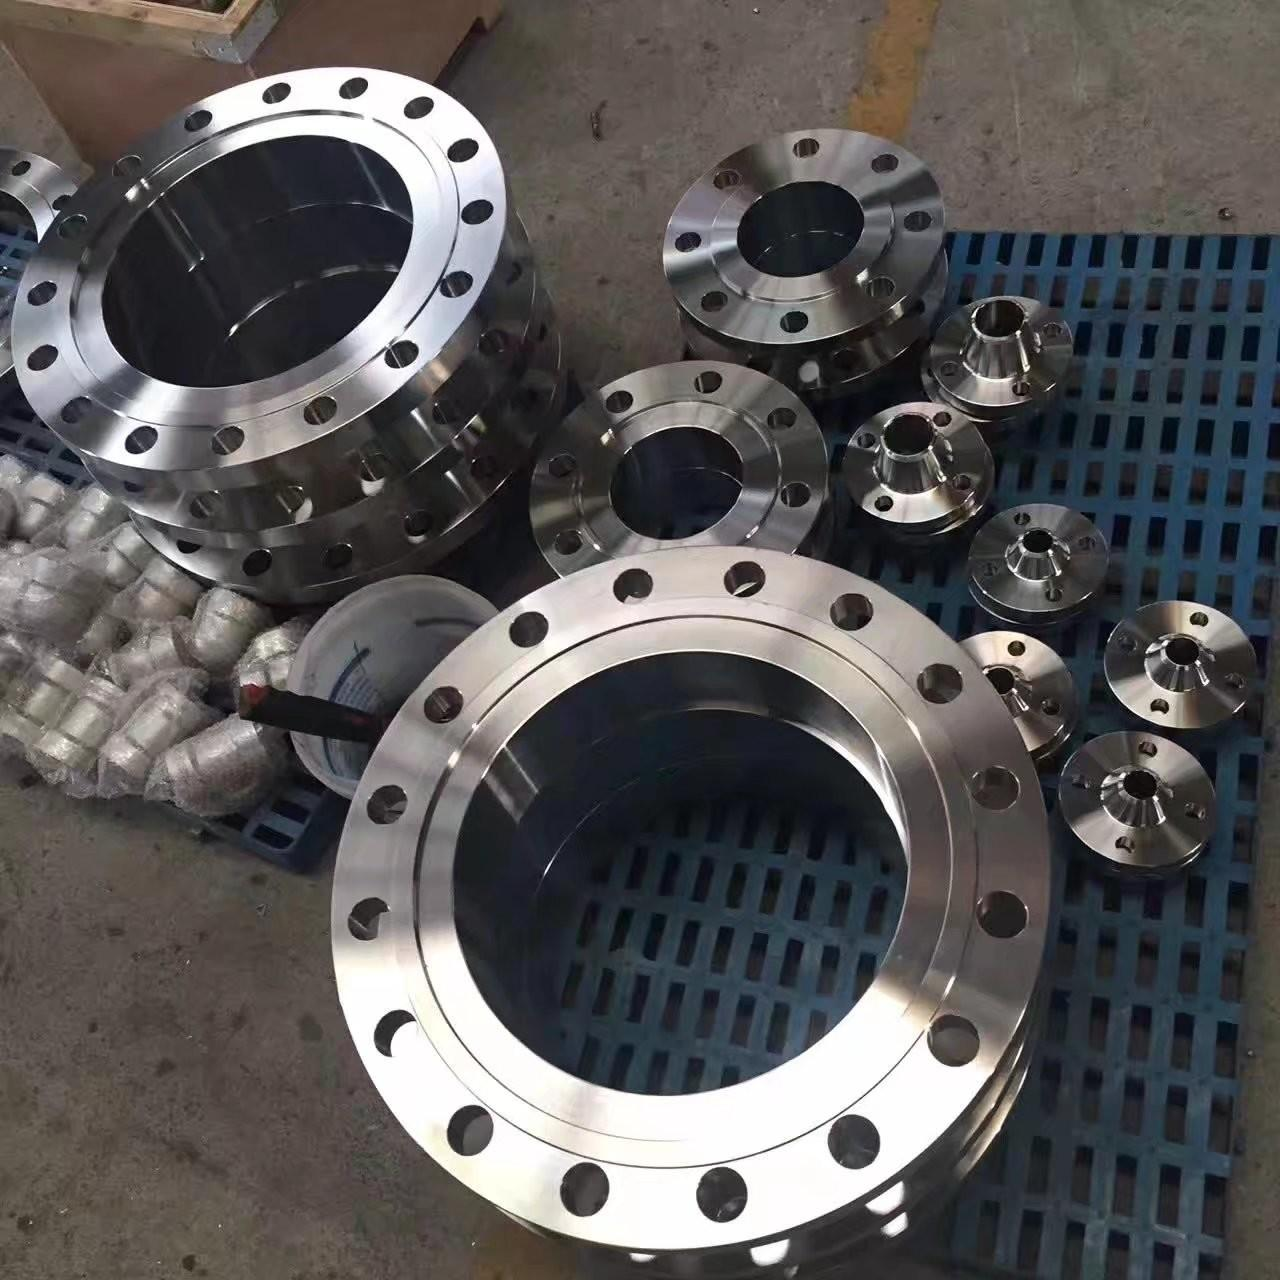 China ASME B16.47 Flat Face Weld Neck Flange , Long Weld Neck Flange 300lbs Pressure  Ameriforge/Coffer/Texas Metals (USA), on sale